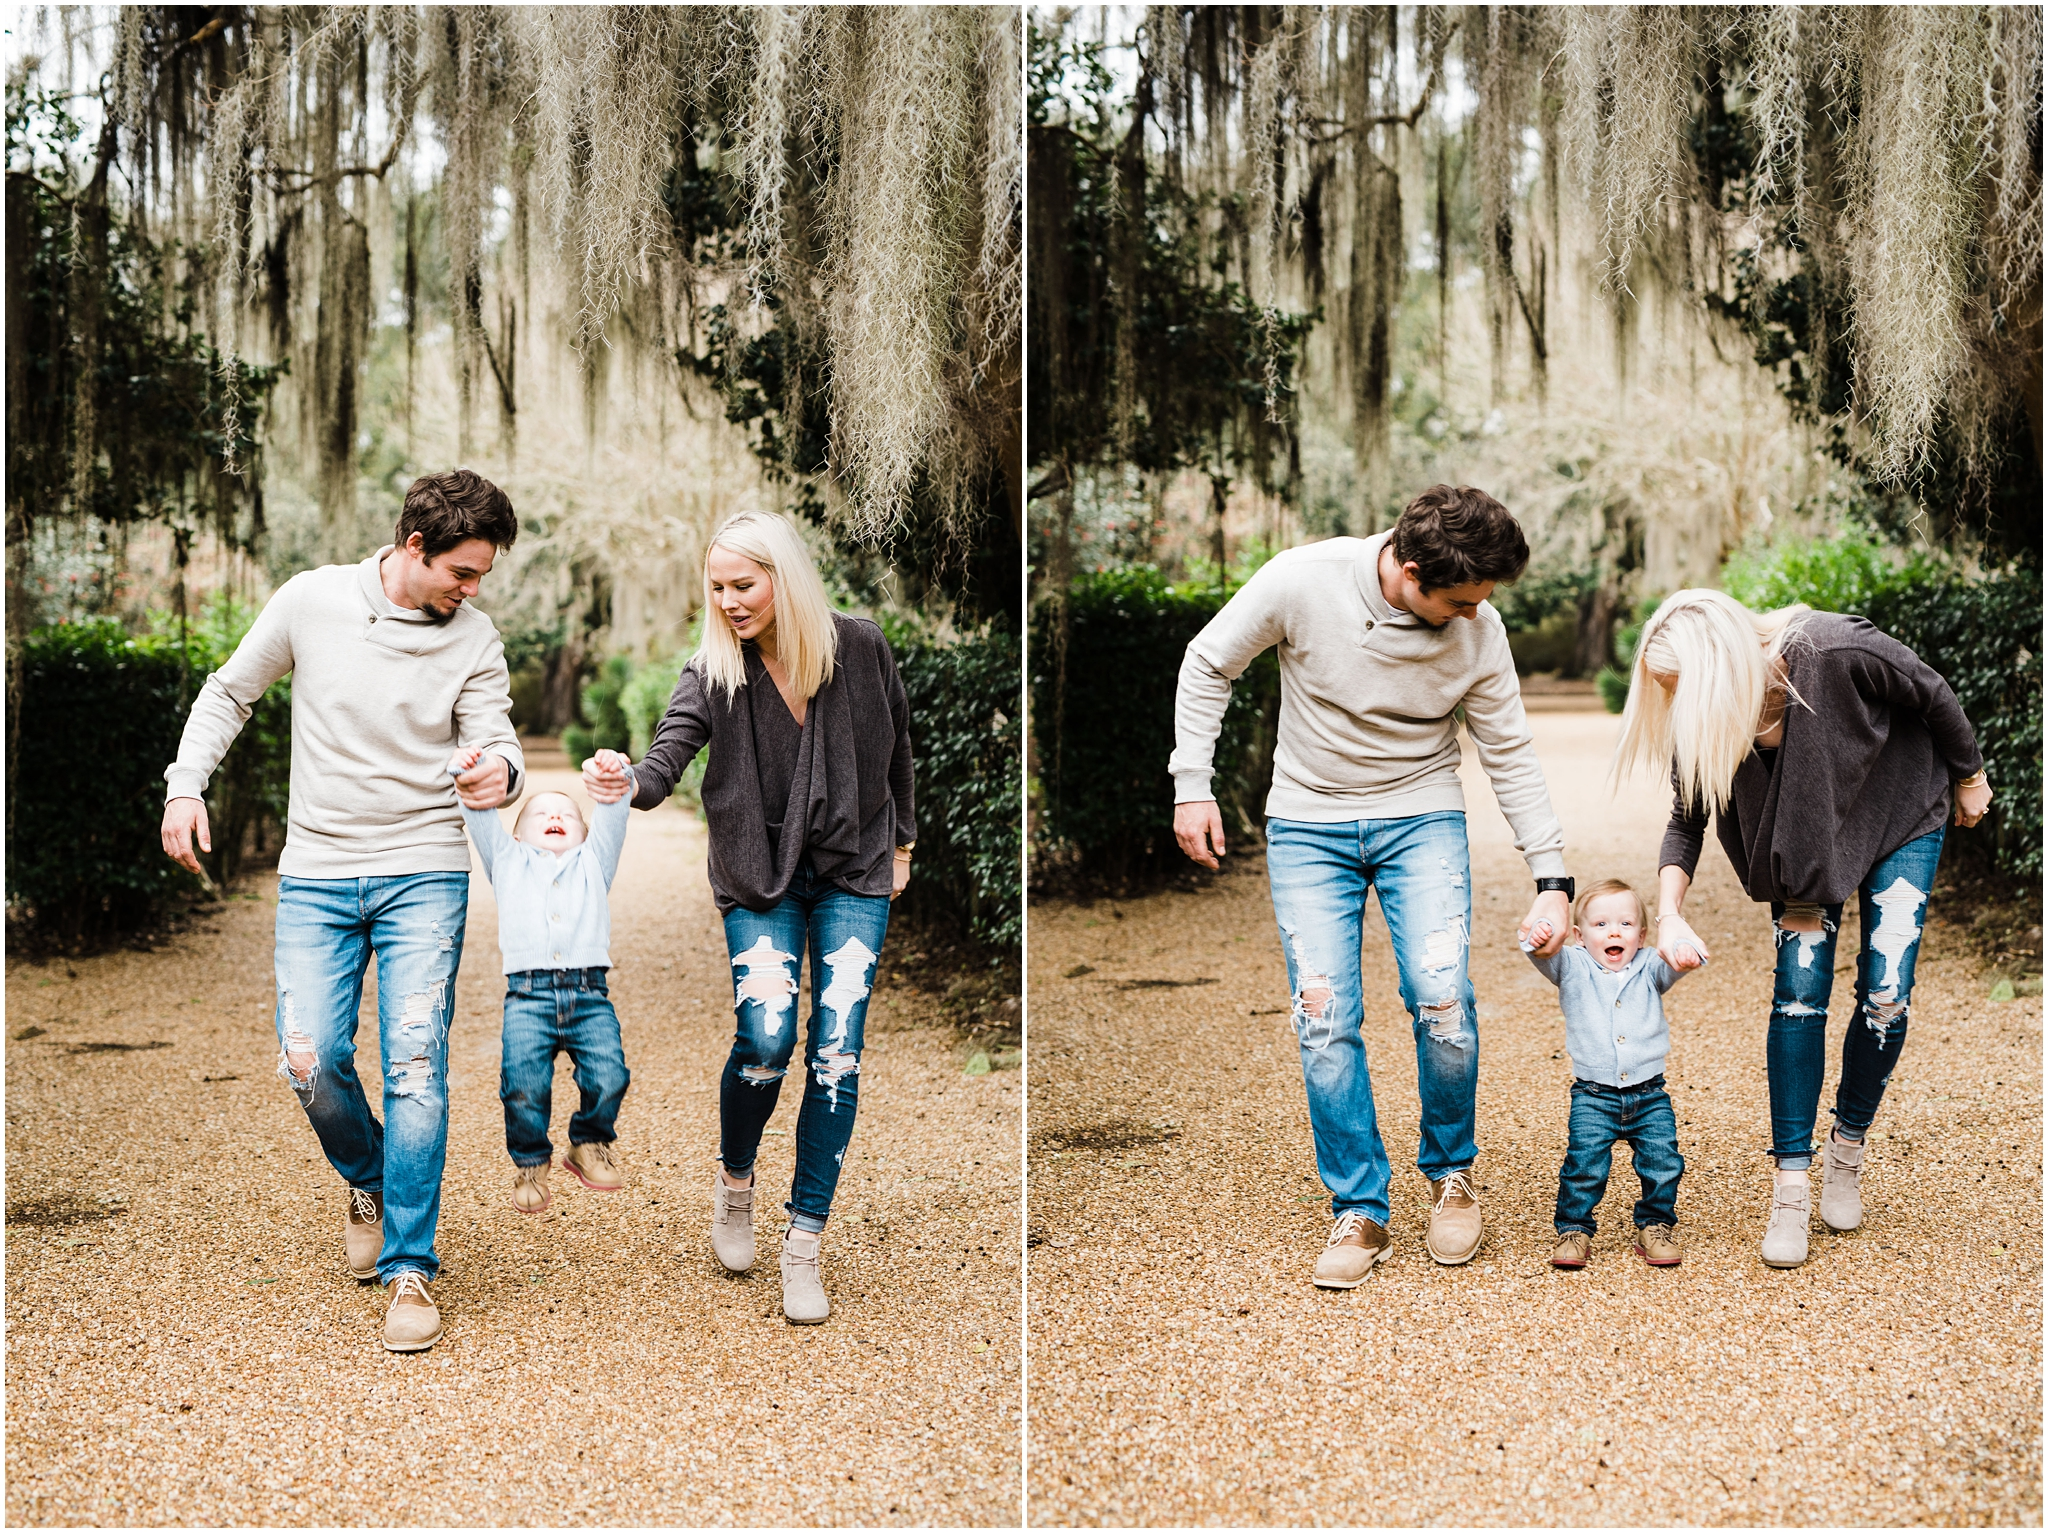 Rosedown Plantation St. Francisville Engagement and Family Session photographed by Taylor Hubbs Photography located in Baton Rouge, Louisiana. Wedding and lifestyle Family and children photographer.